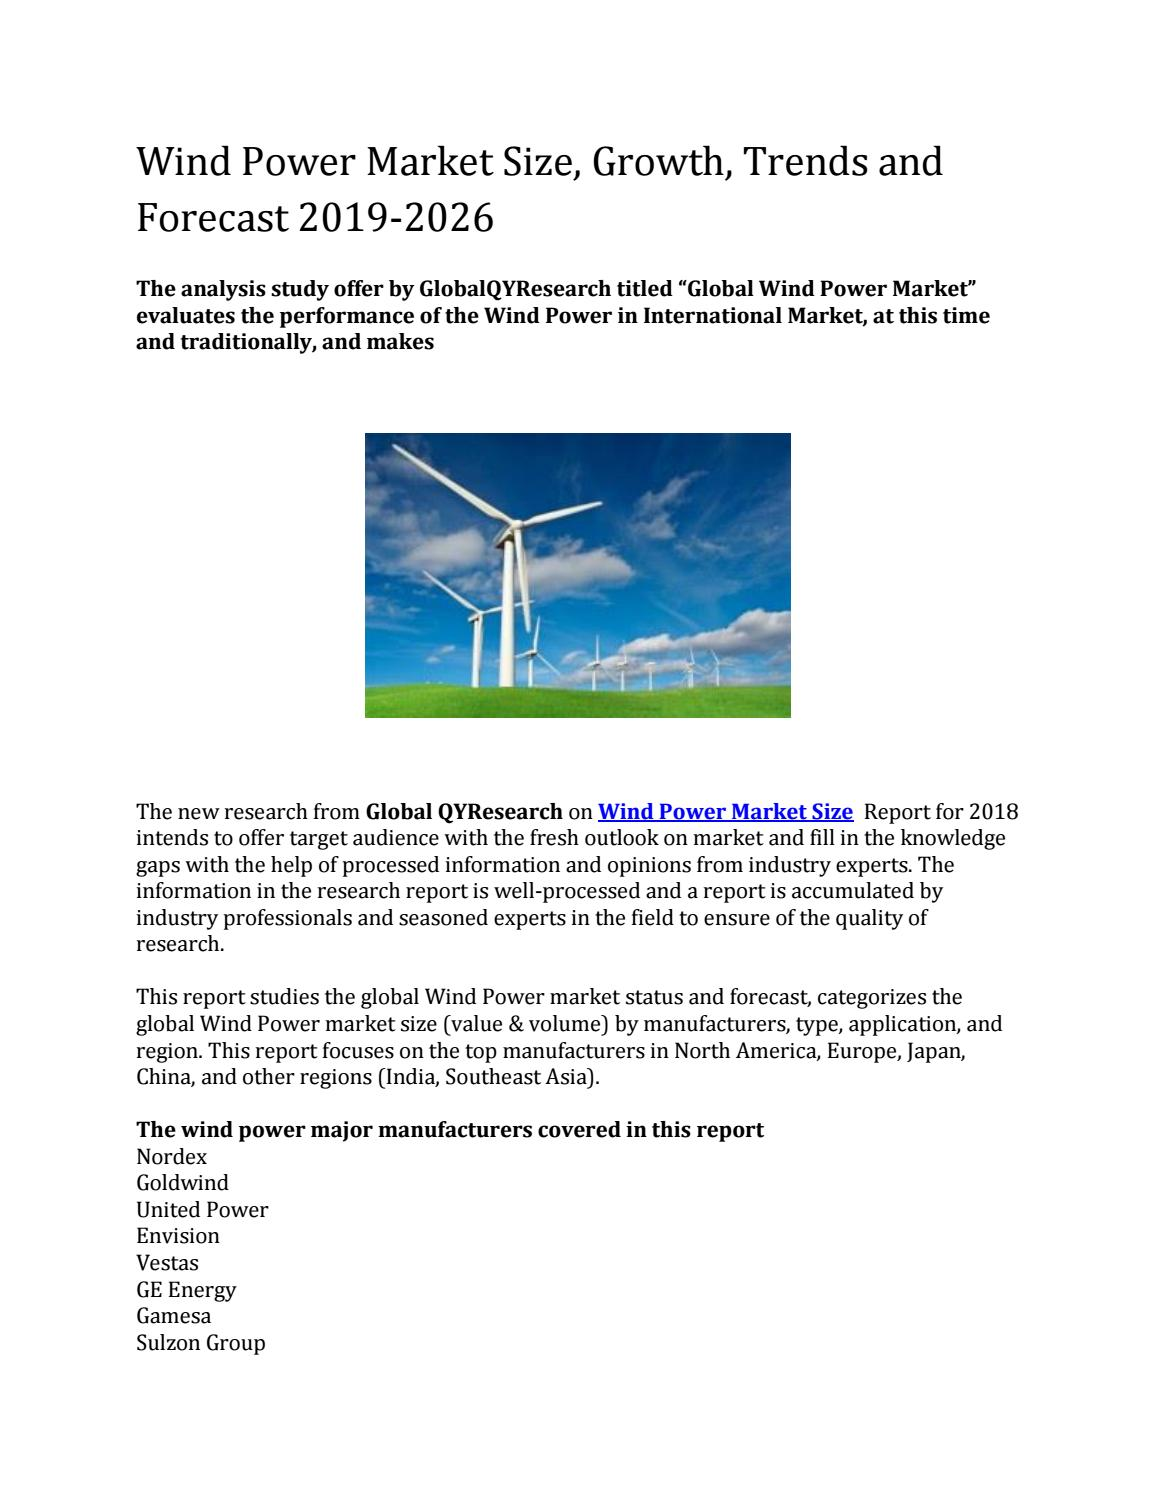 Wind Power in Global Market Size, Share, Trends, Growth